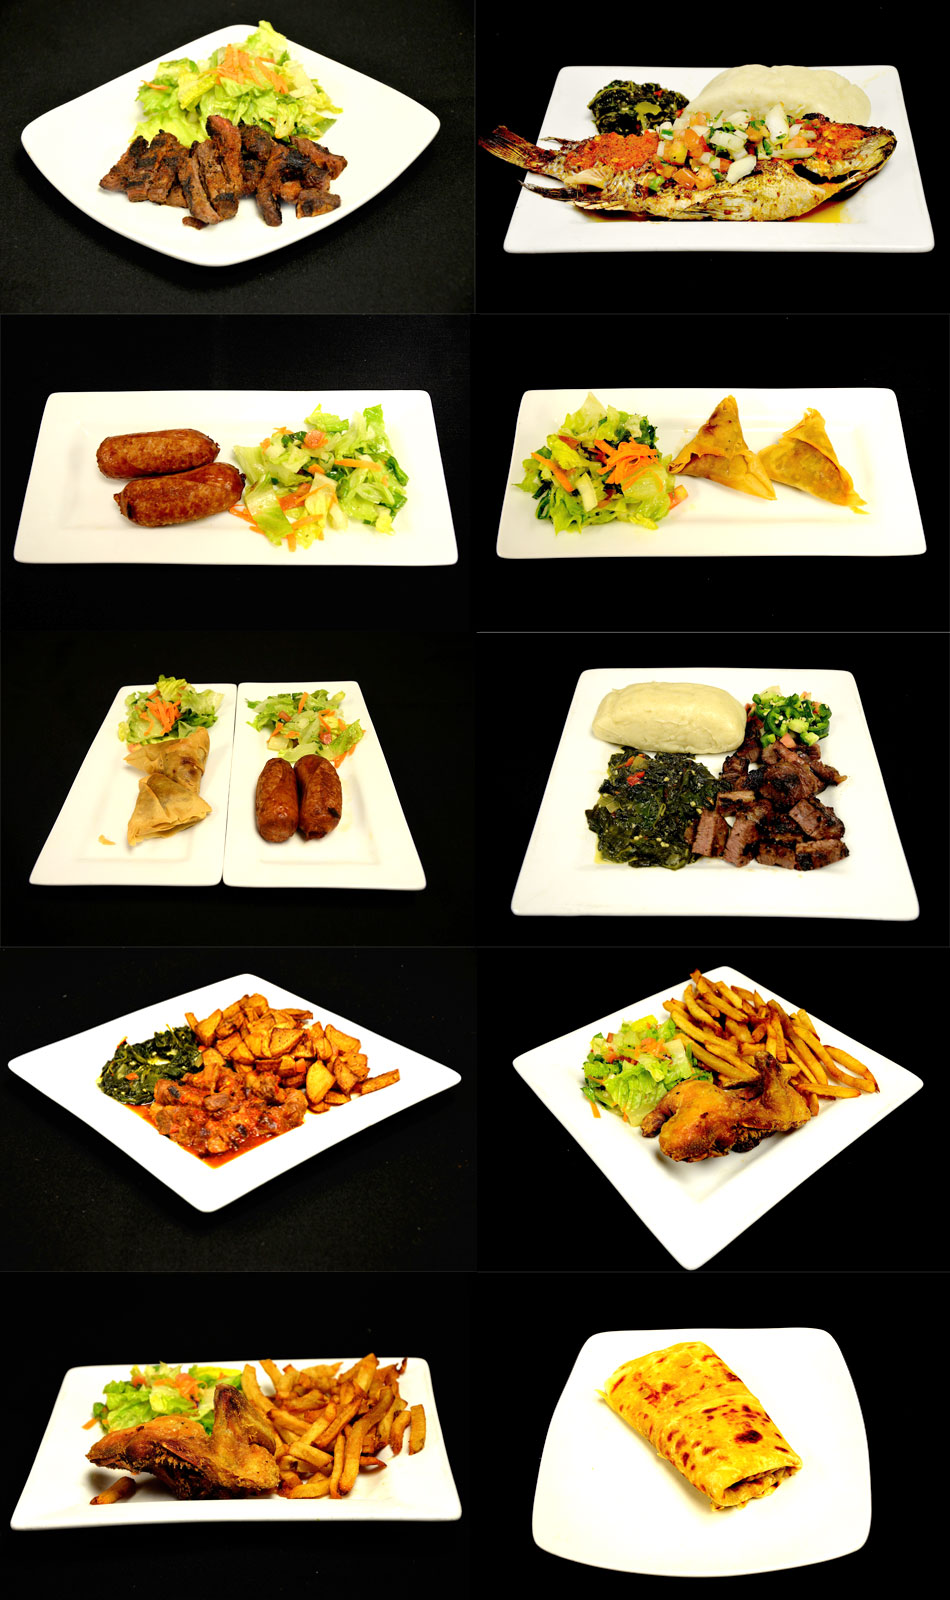 Taste of Africa Menu Picts